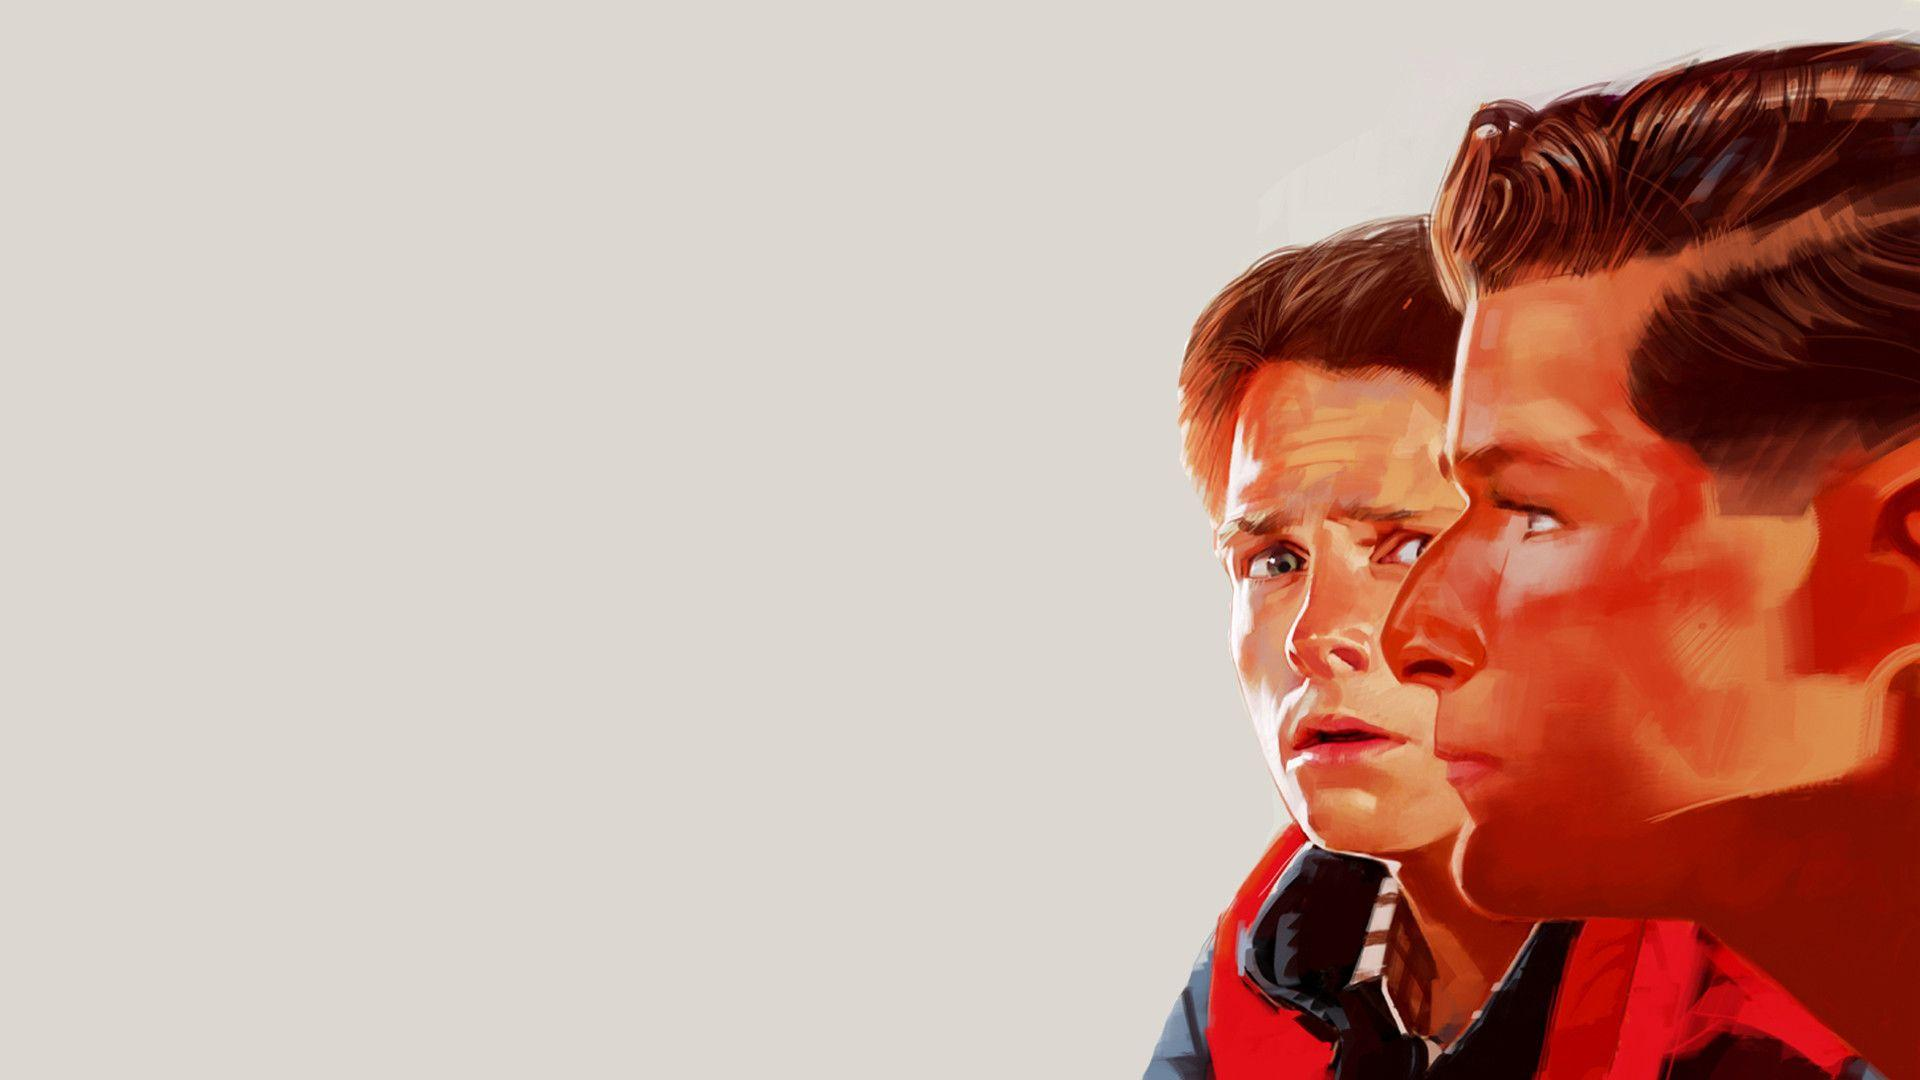 Back To The Future Wallpapers HD - Wallpaper Cave